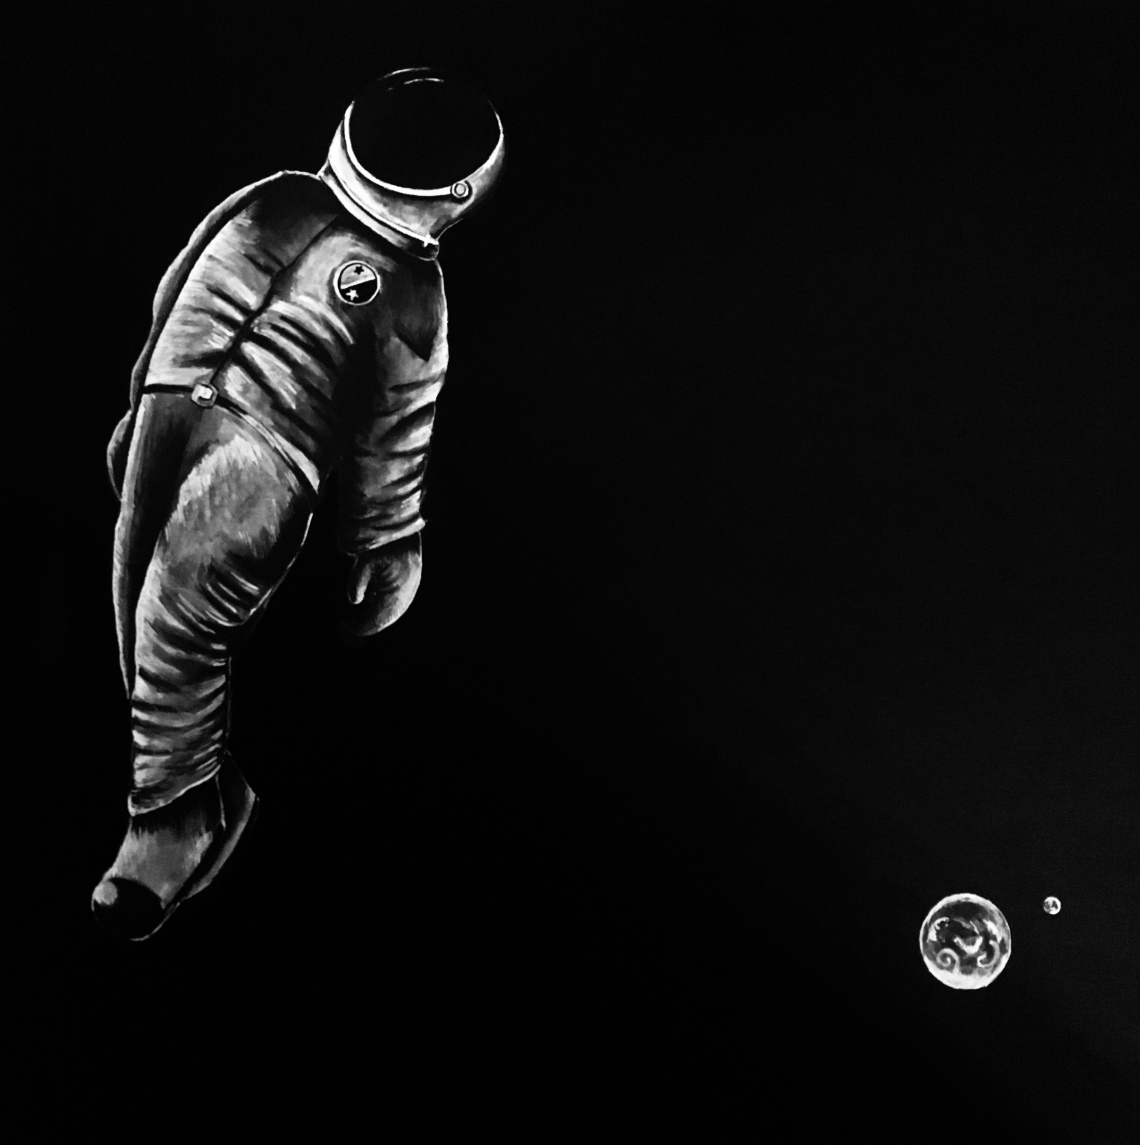 holly-holt-art-call-of-the-void-astronaut-ink-drawing